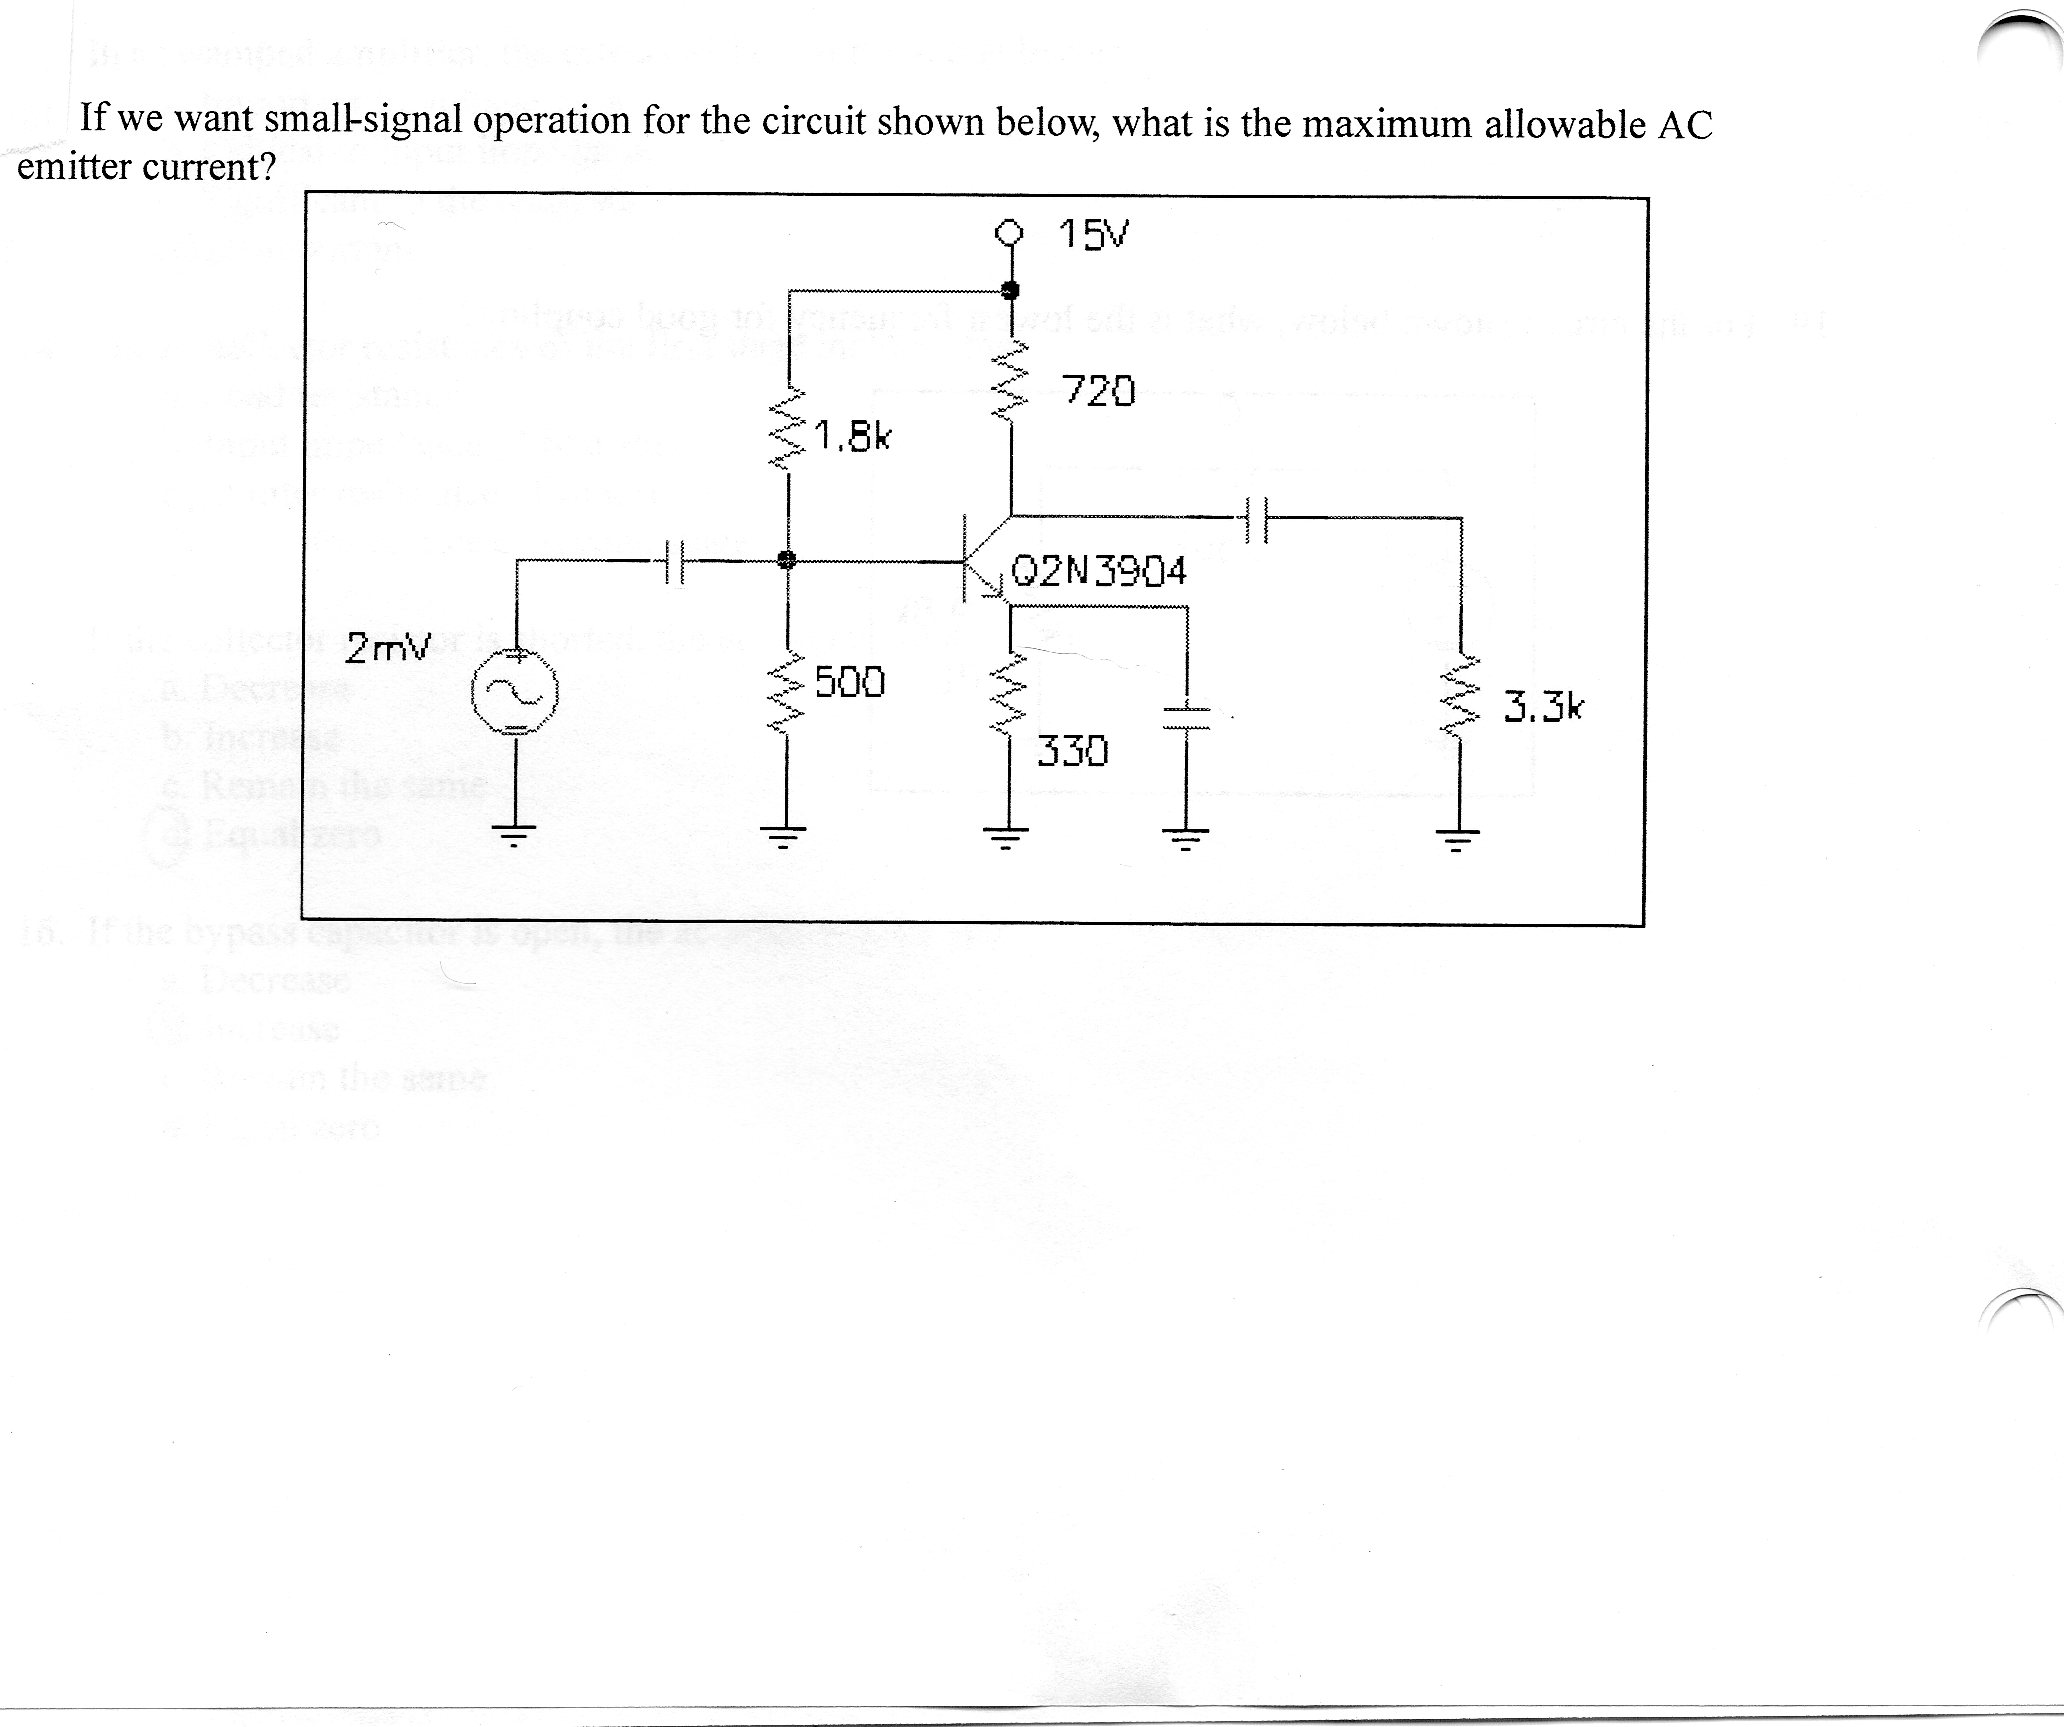 If we want small-signal operation for the circuit